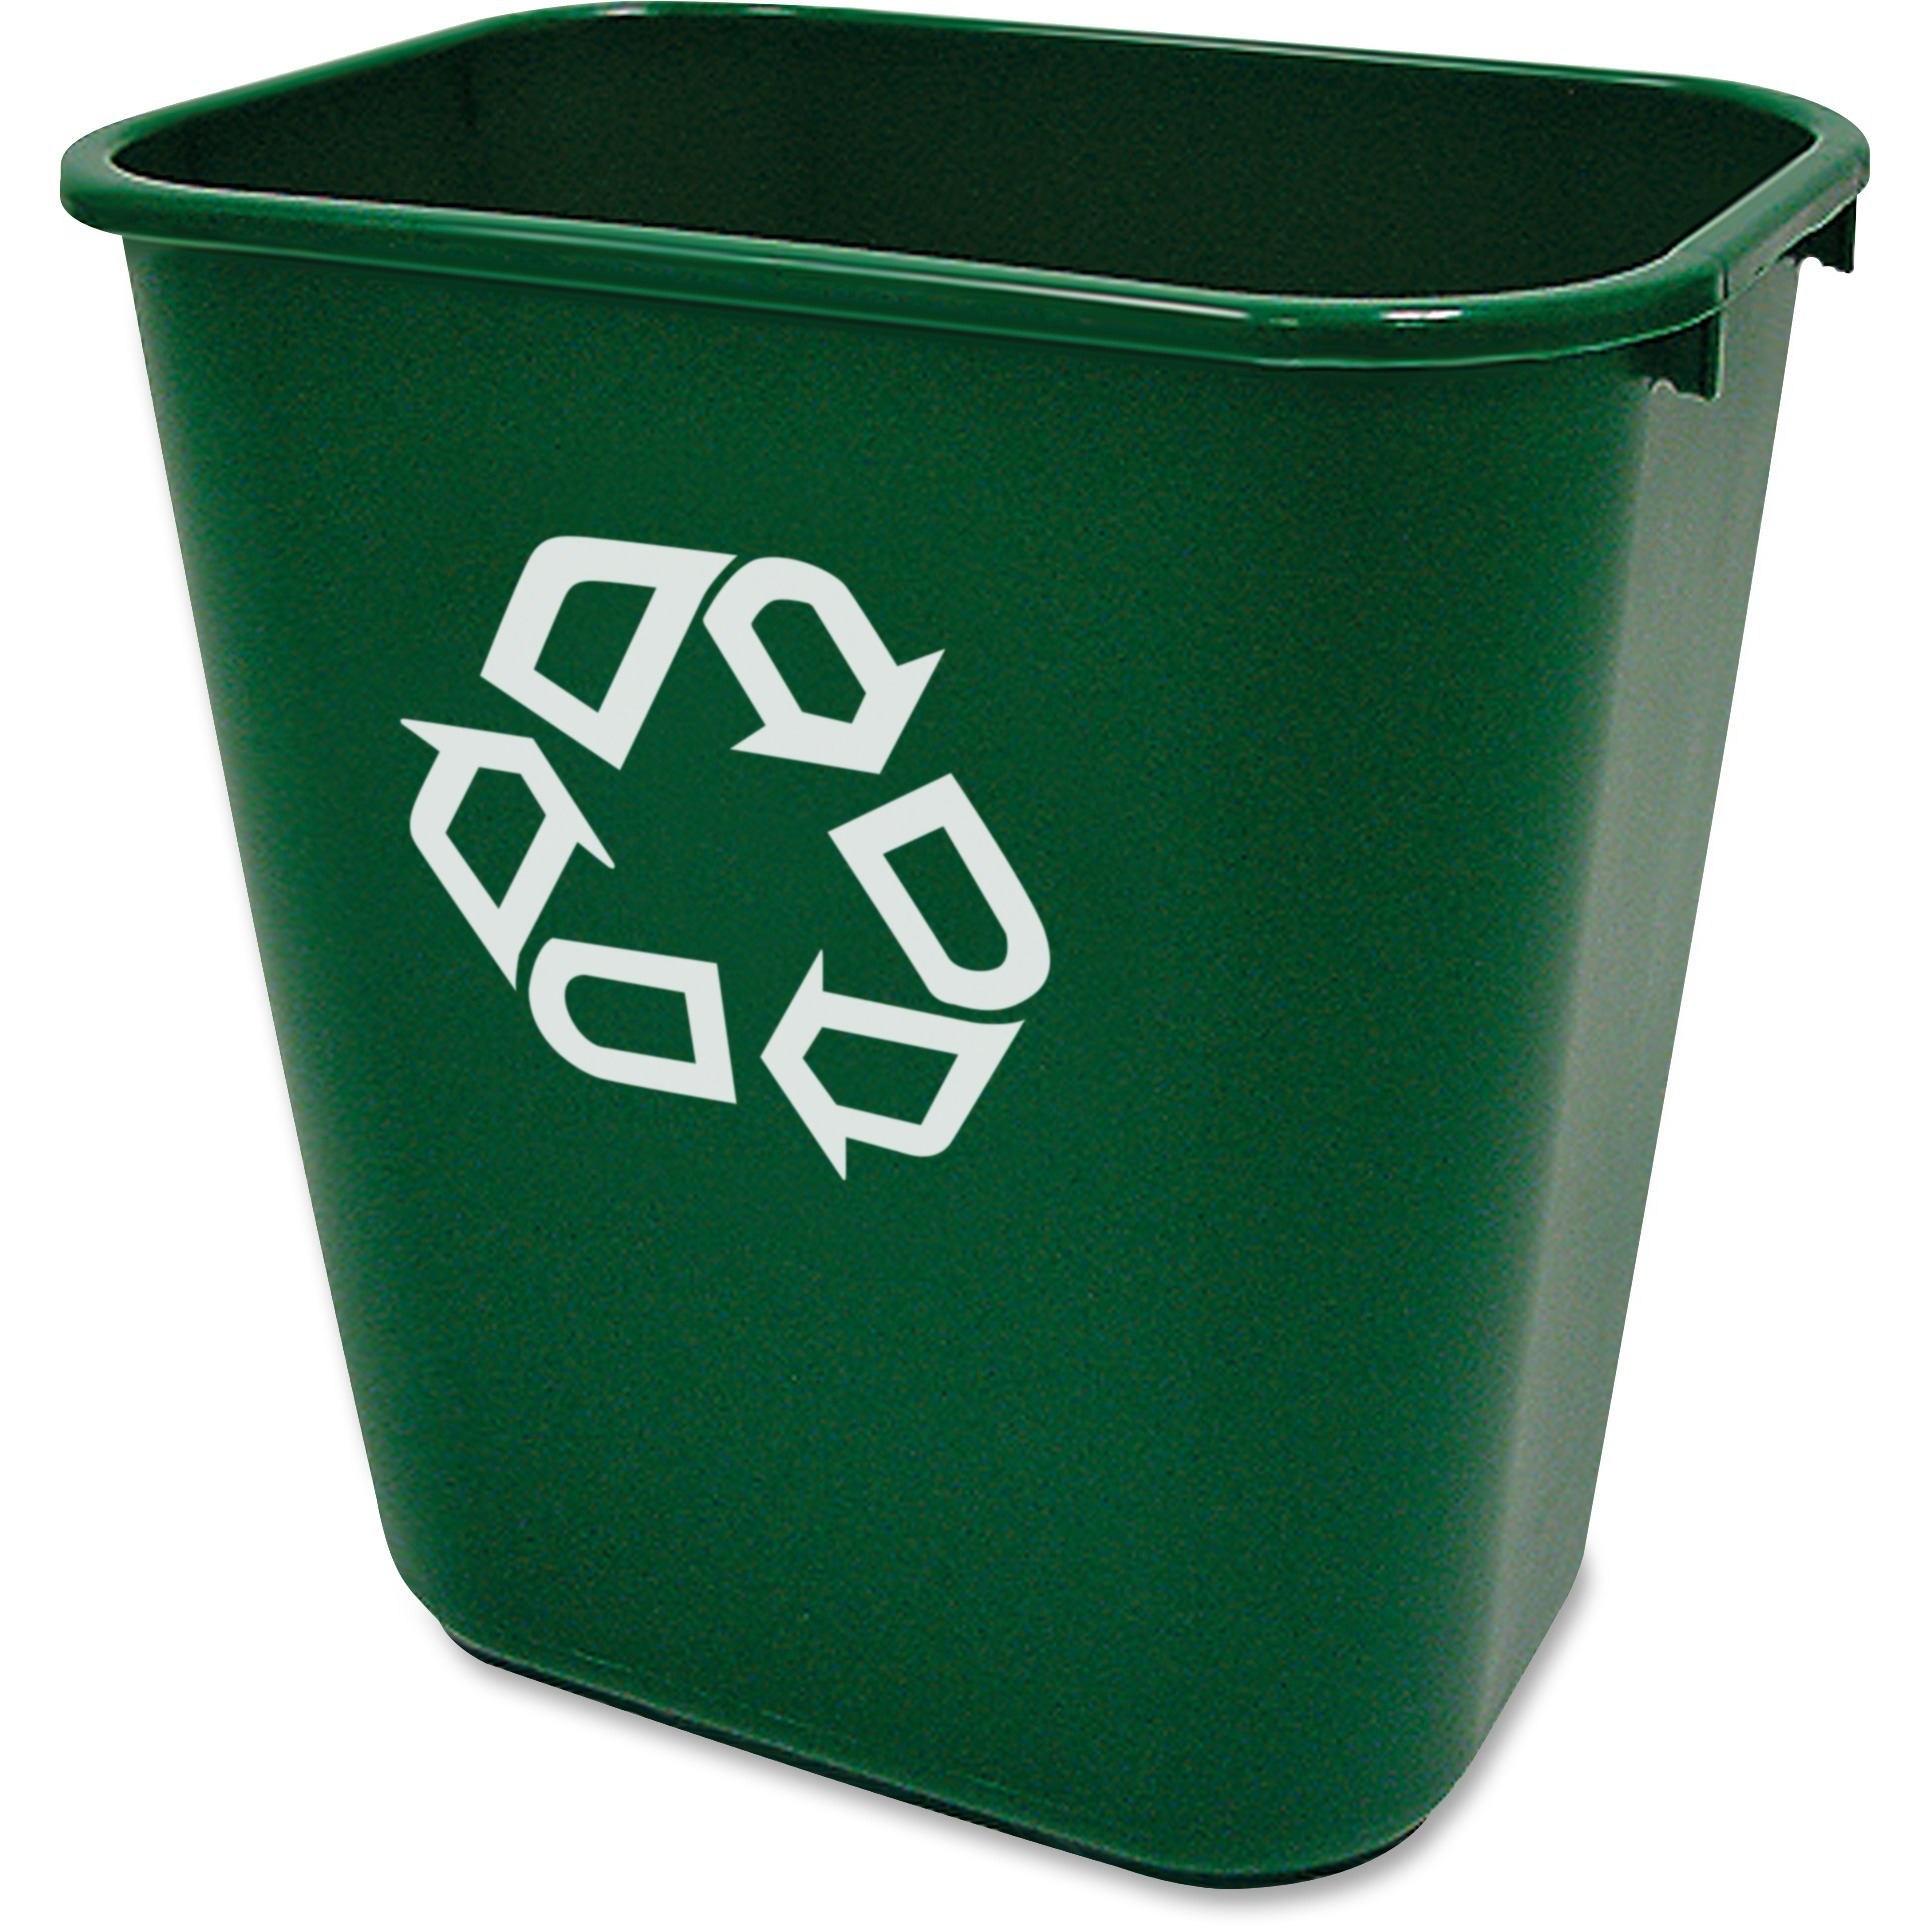 Rubbermaid Commercial, RCP295606GN, Deskside Recycling Container, 12, Green